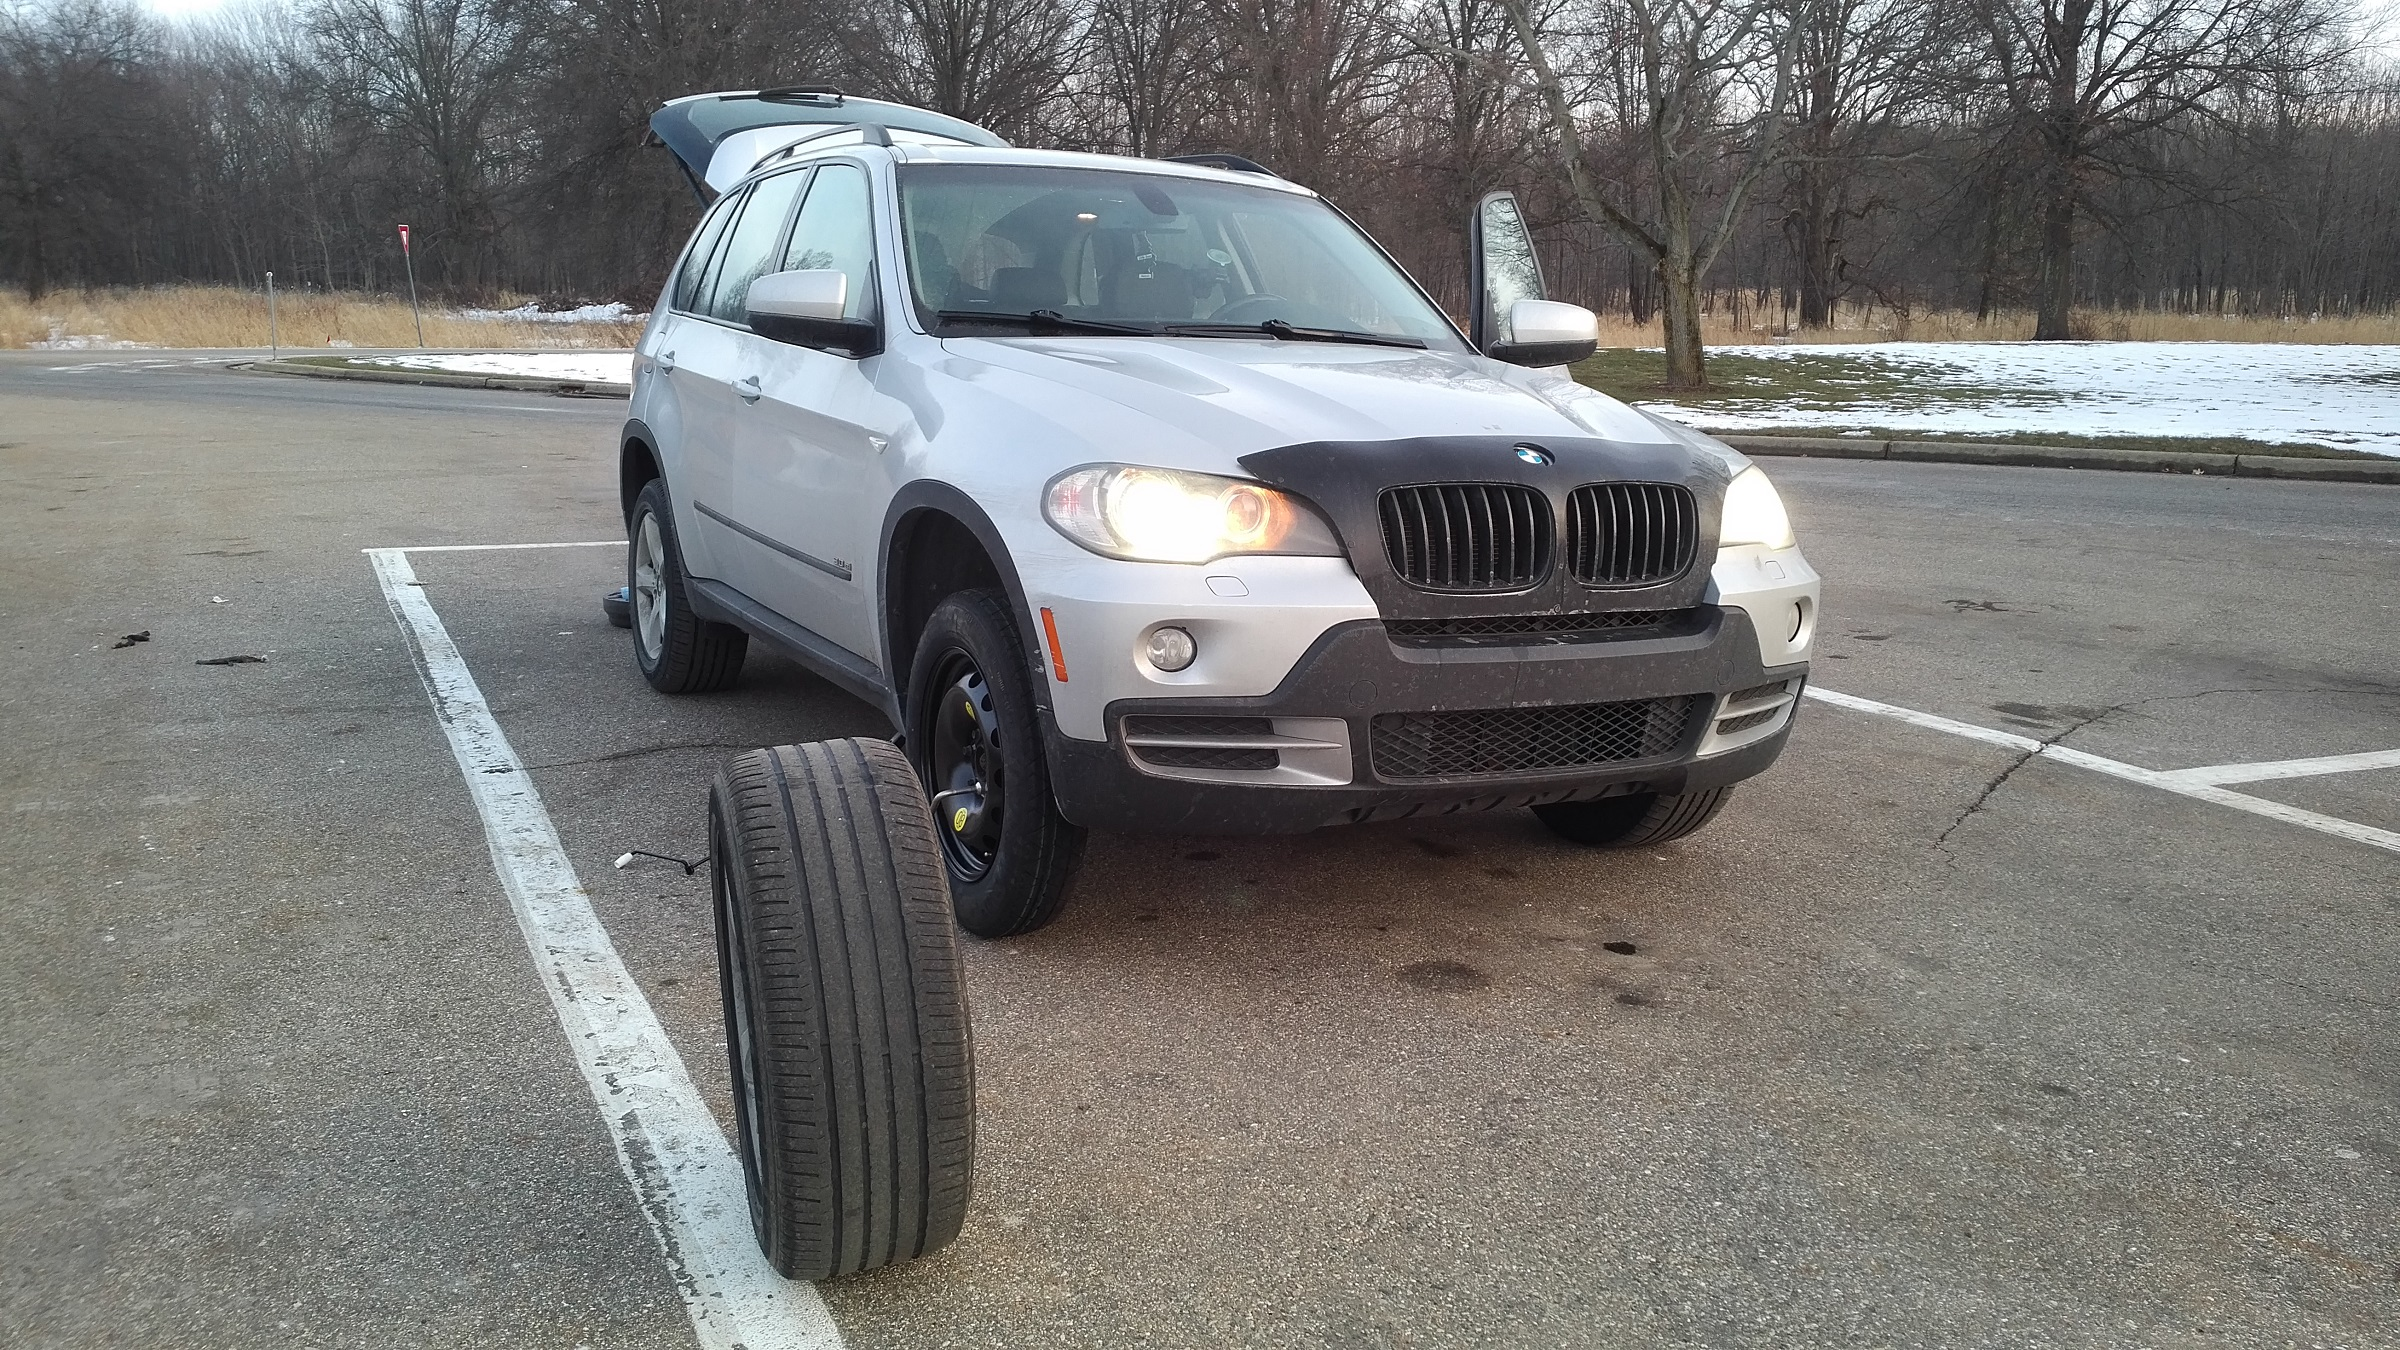 Lifted E70 X5 With Oversized Tires Page 2 Xbimmers Com Bmw X6 Forum X5 Forum